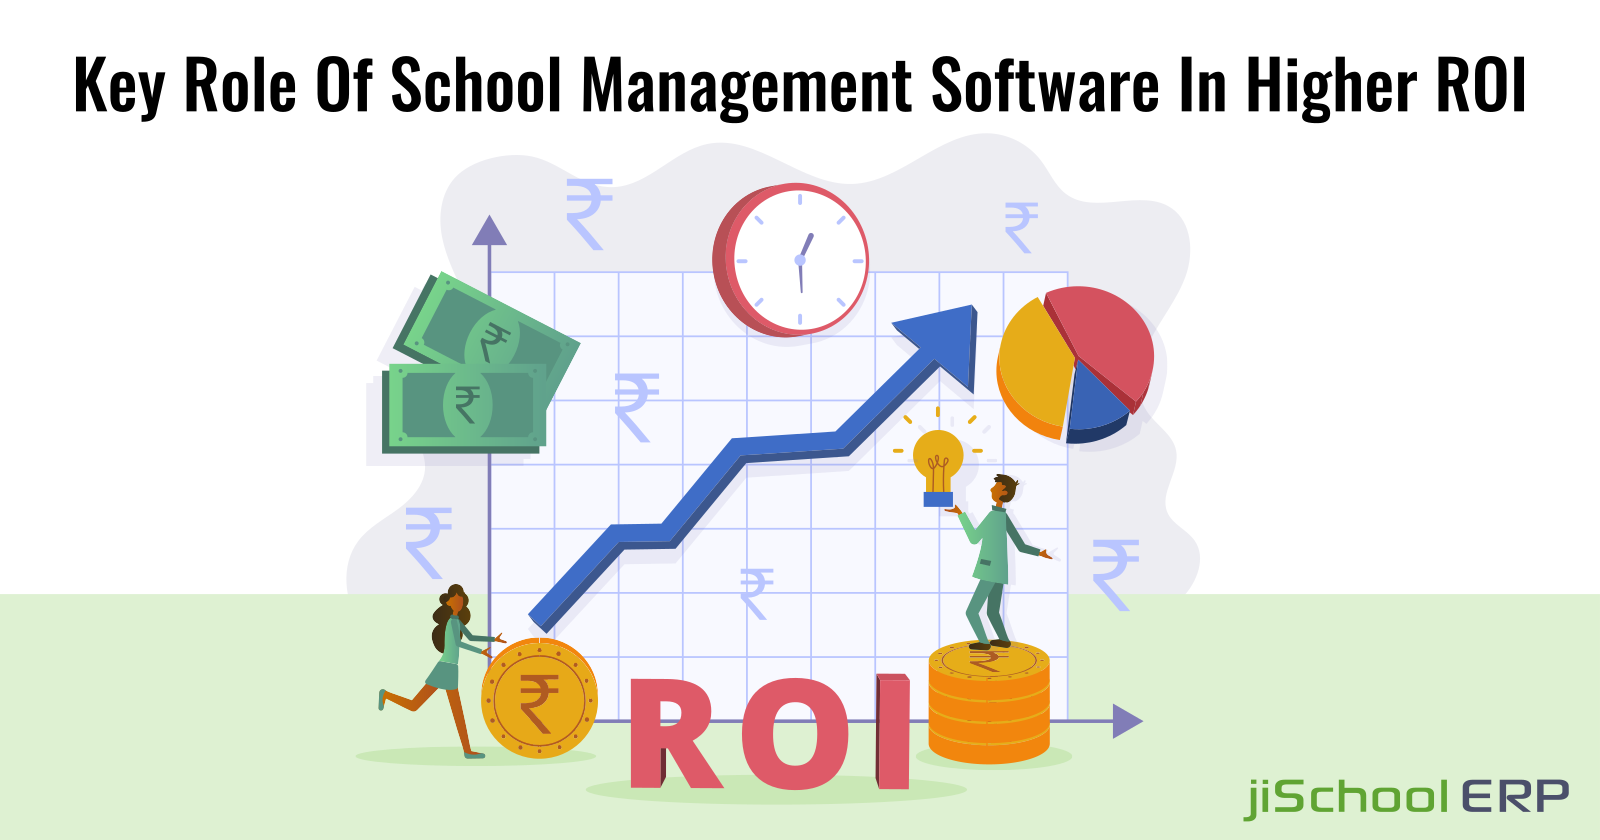 Key Role Of School Management Software In Higher ROI